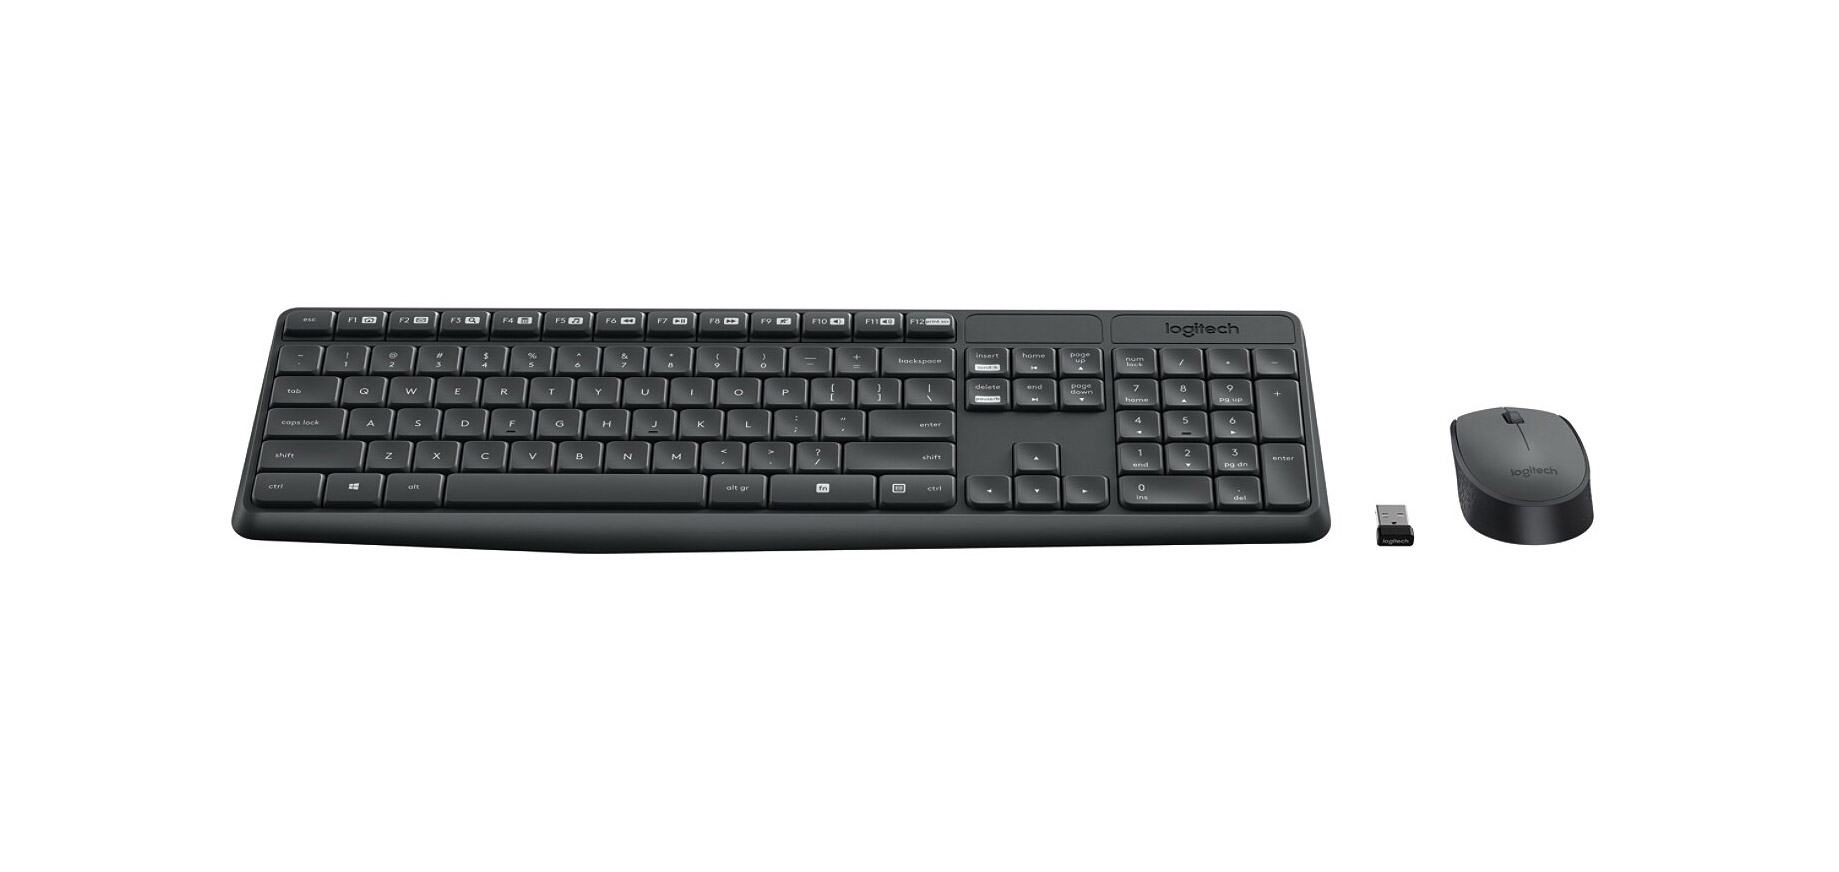 490aa00c8226 Logitech Wireless Optical Mouse And Keyboard MK235 for $12.99 from ...